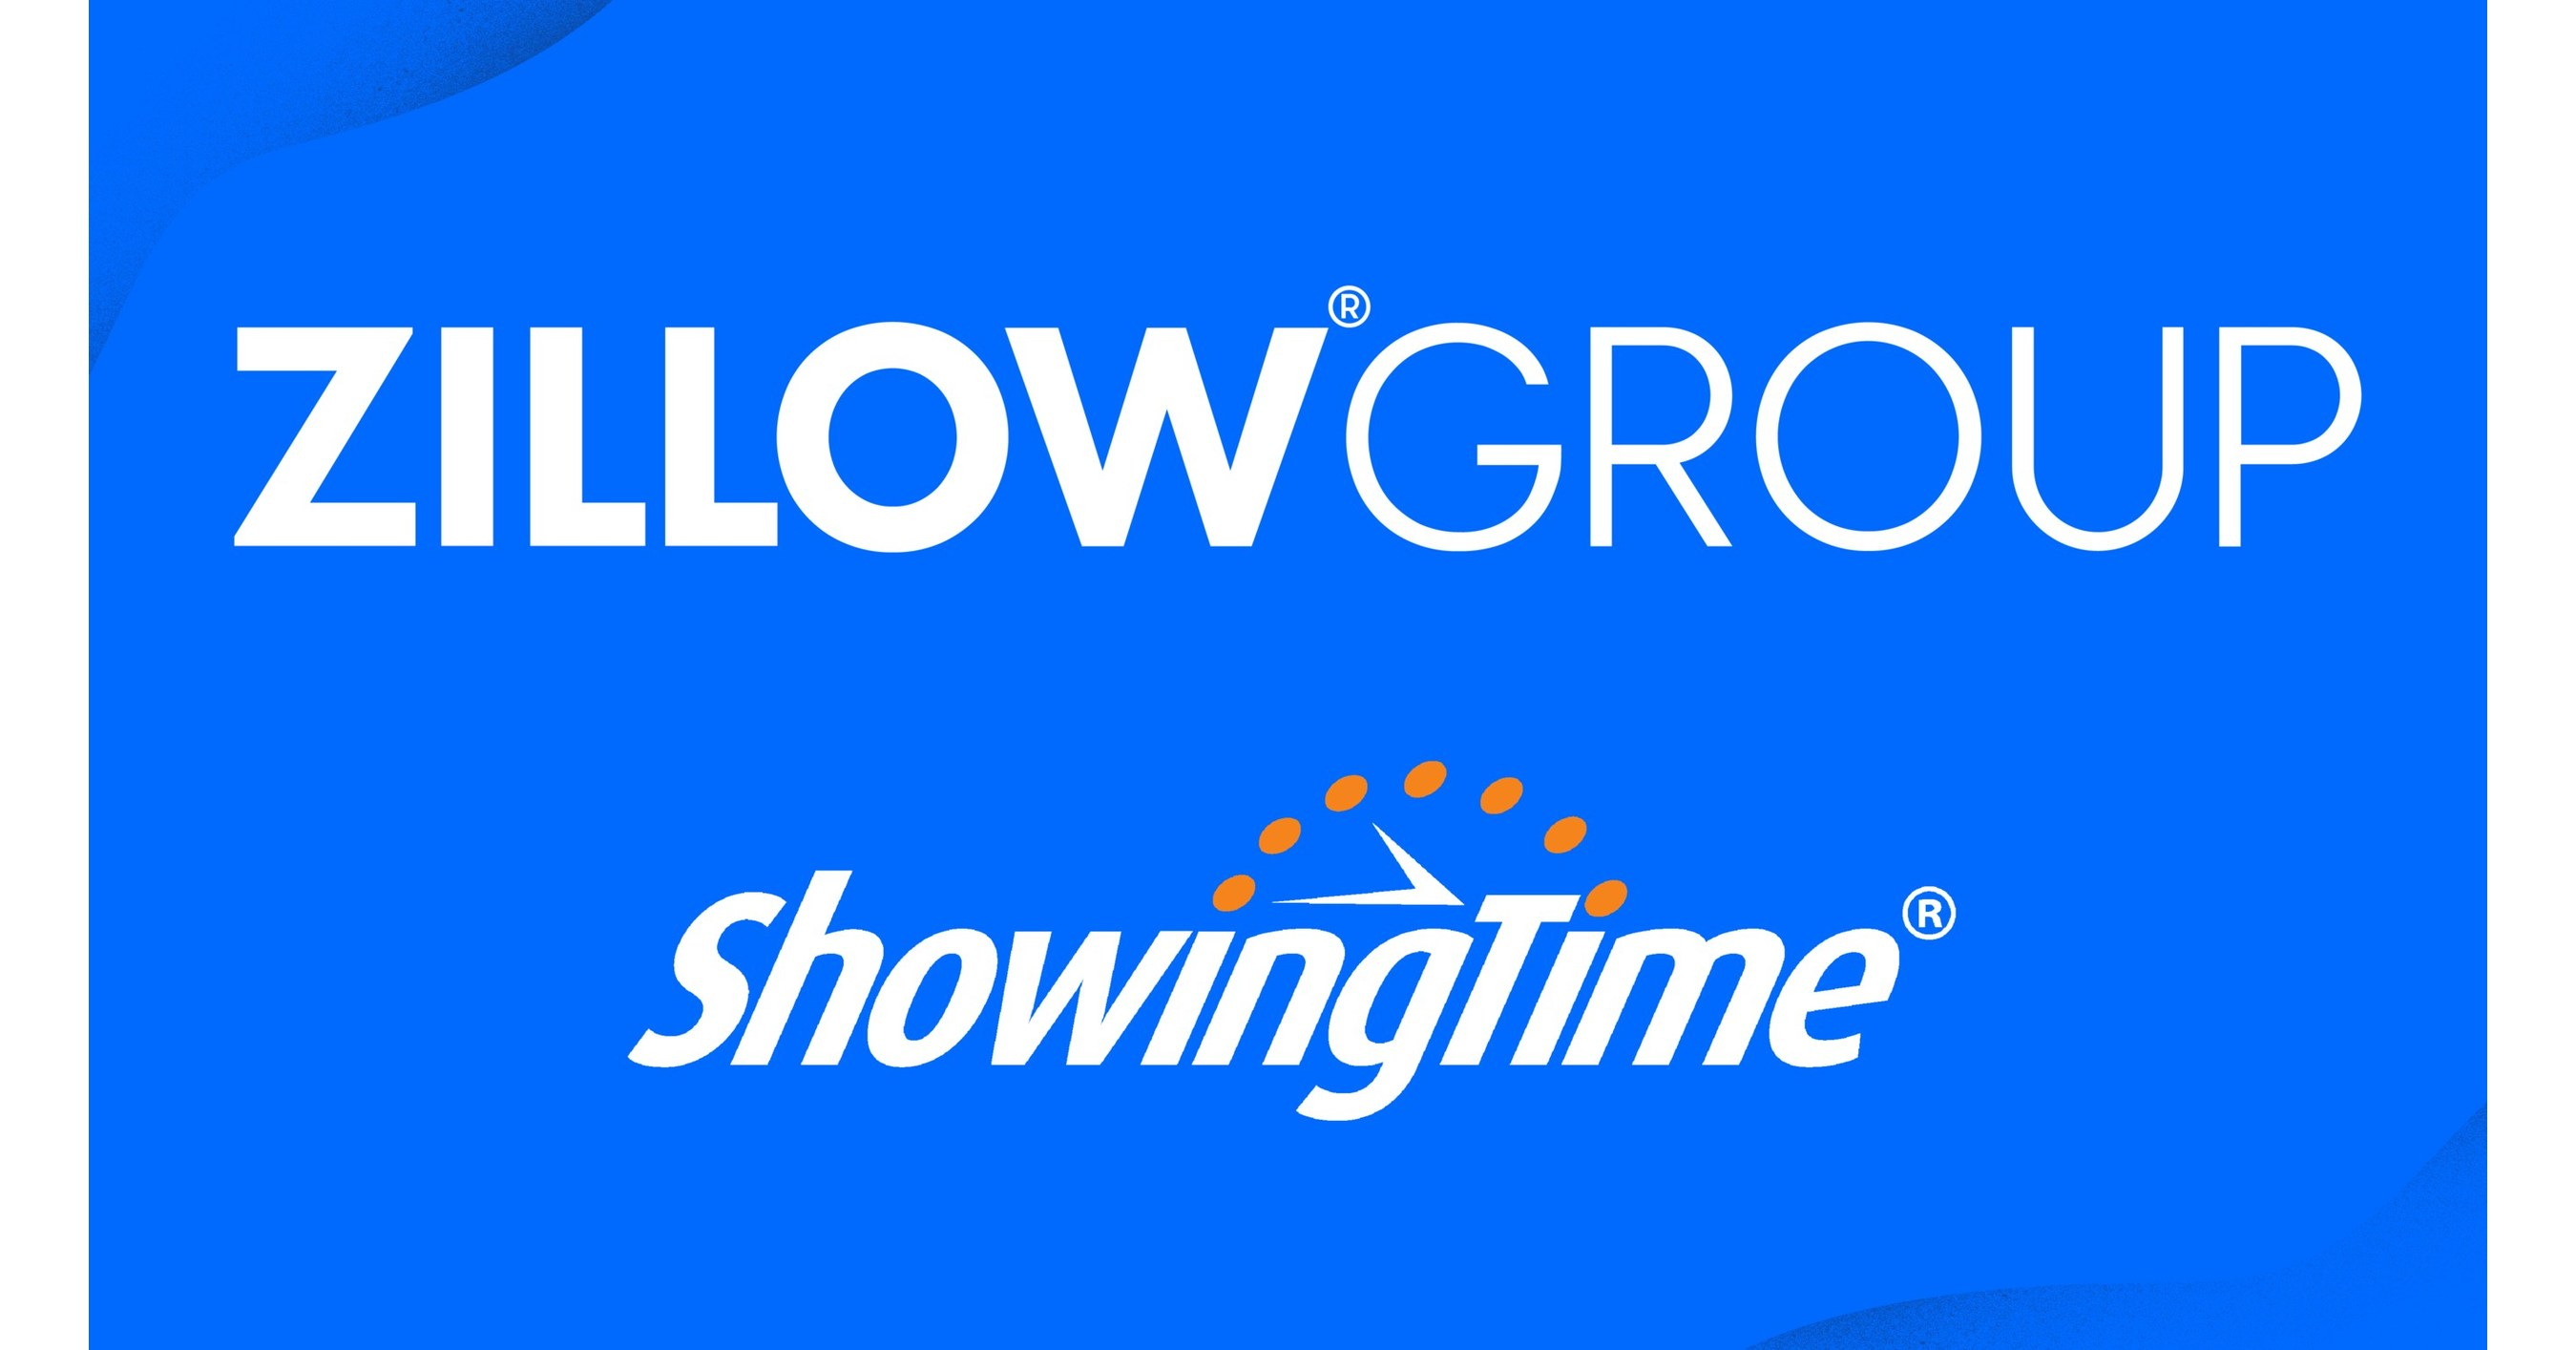 Zillow Group to Acquire ShowingTime, the Industry Leader in Home Touring Technology - PRNewswire